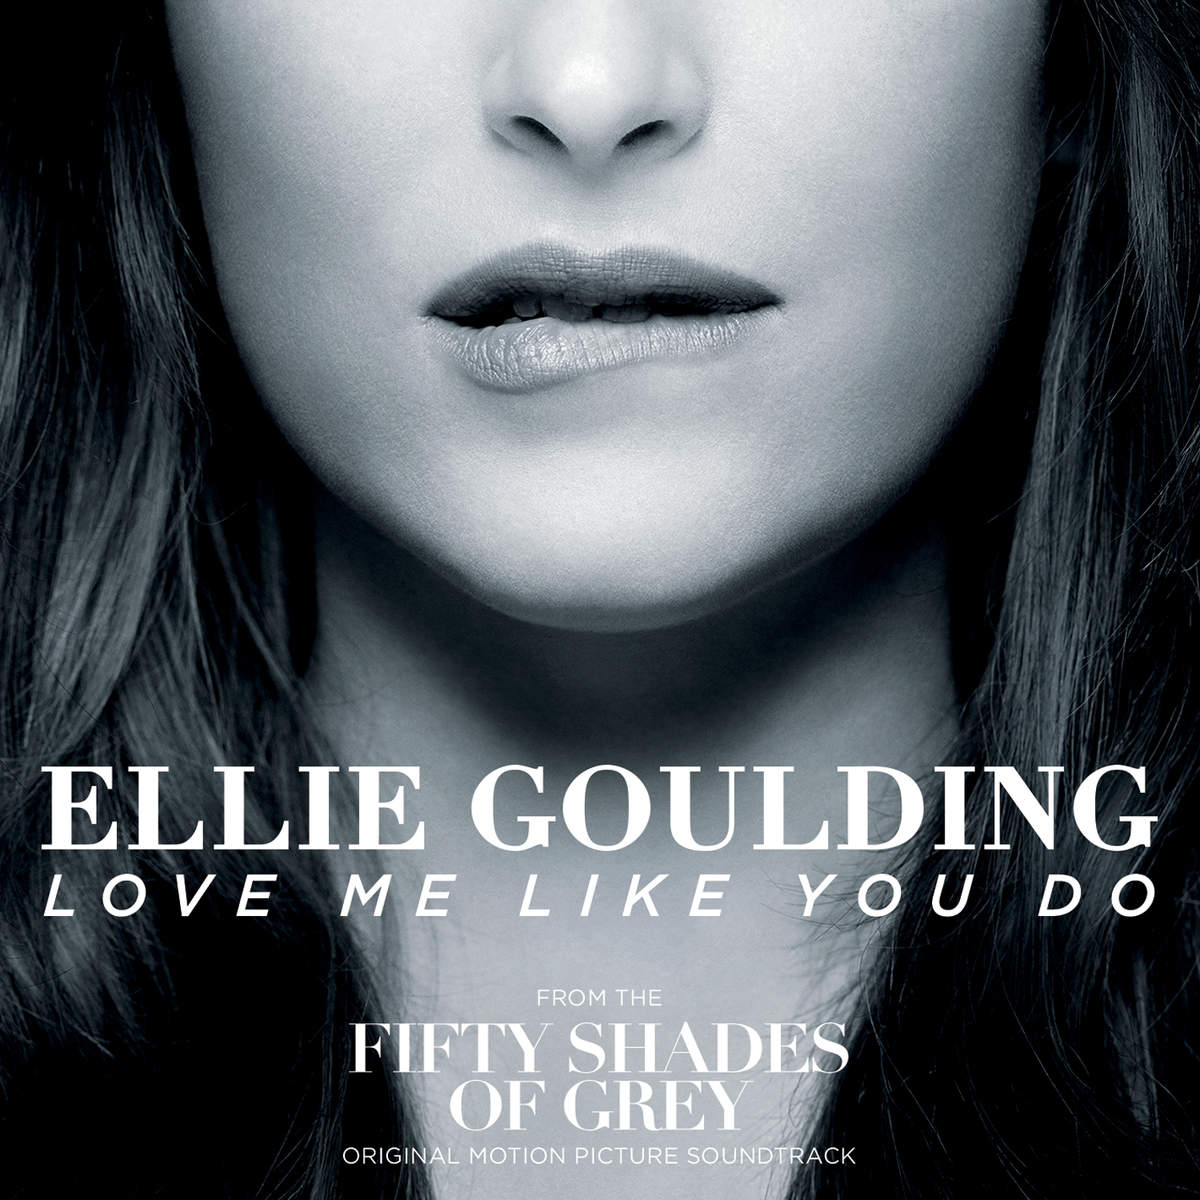 ellie-goulding-love-me-like-you-do-2015-1200x1200.png